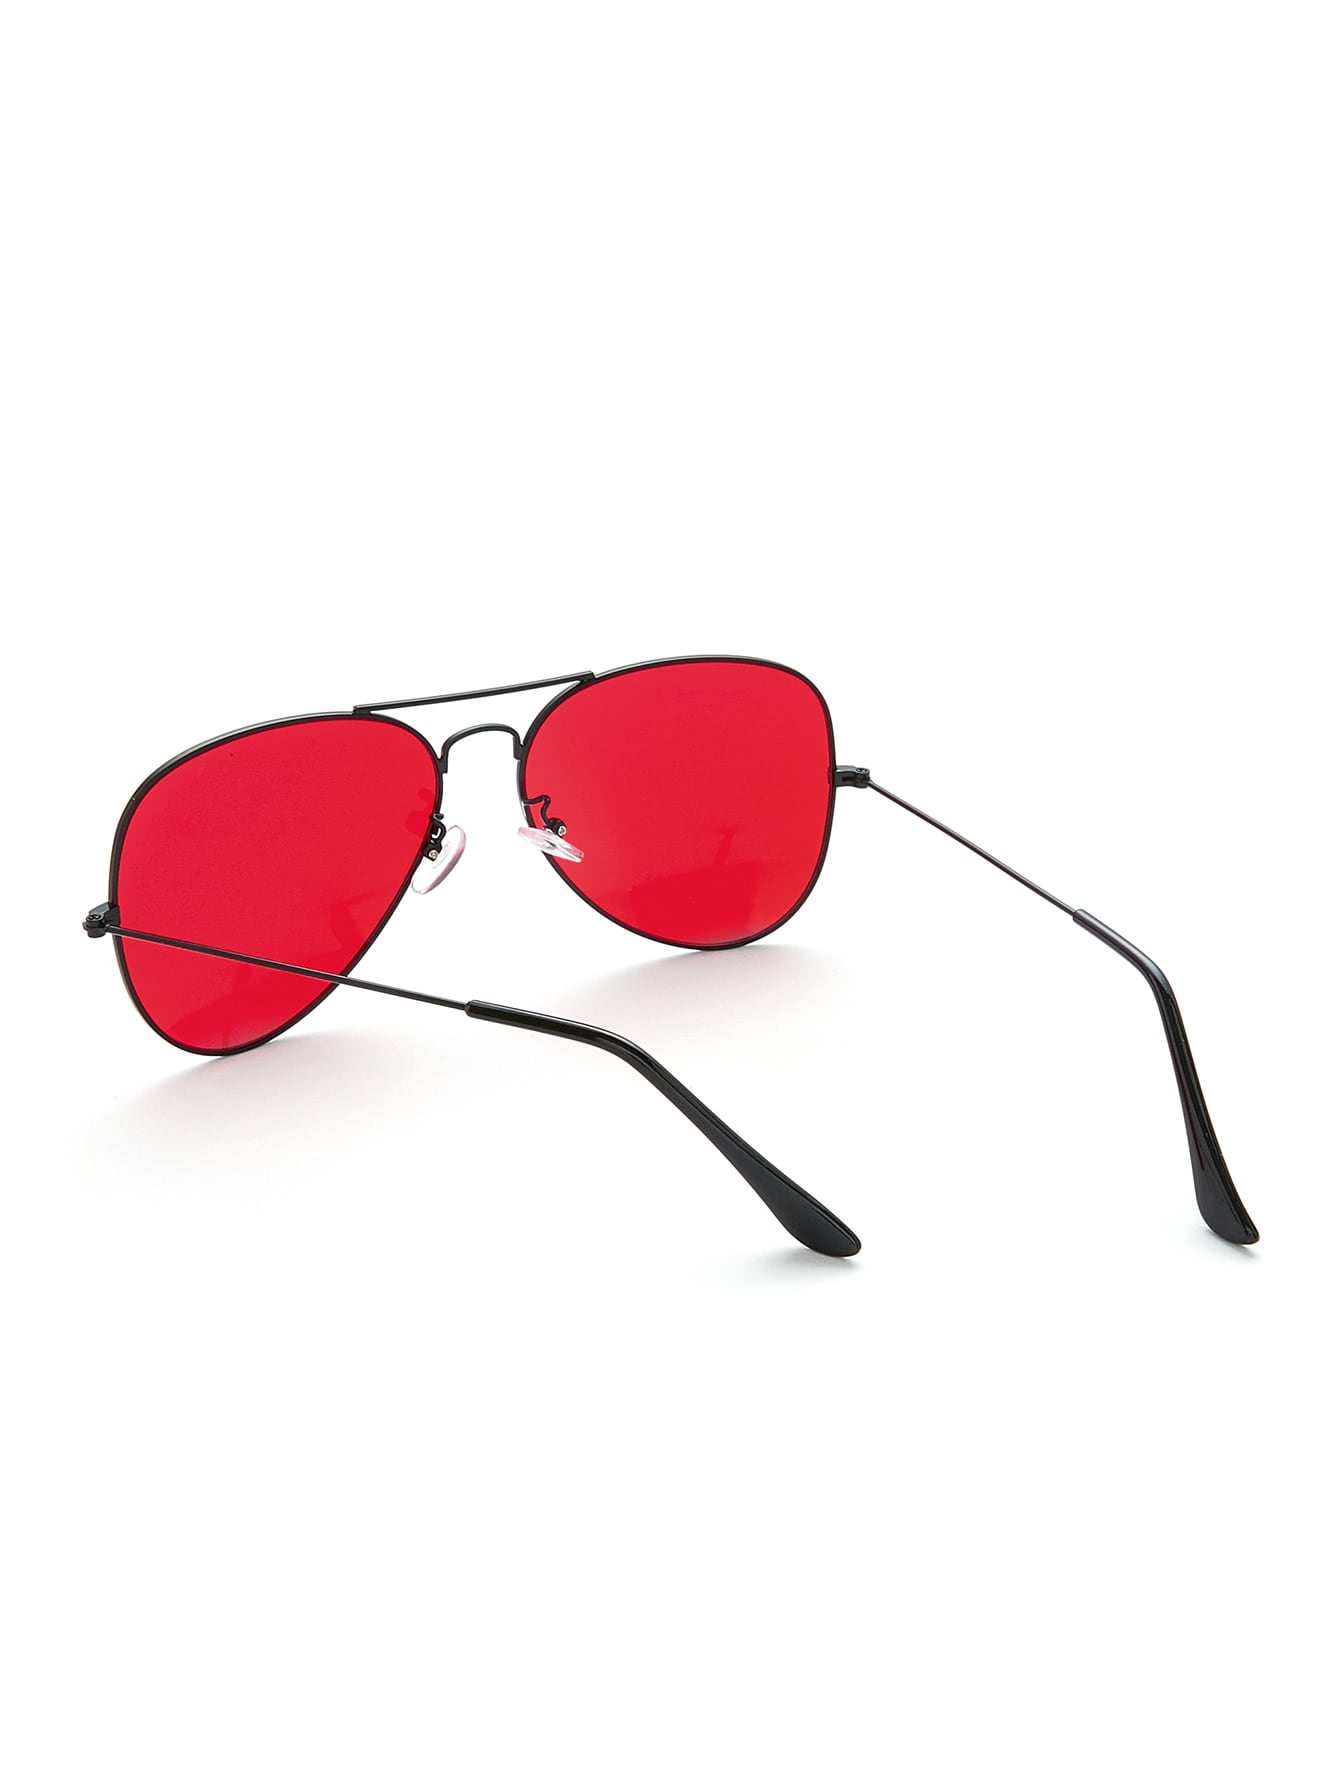 Superieur Top Bar Aviator Sunglasses